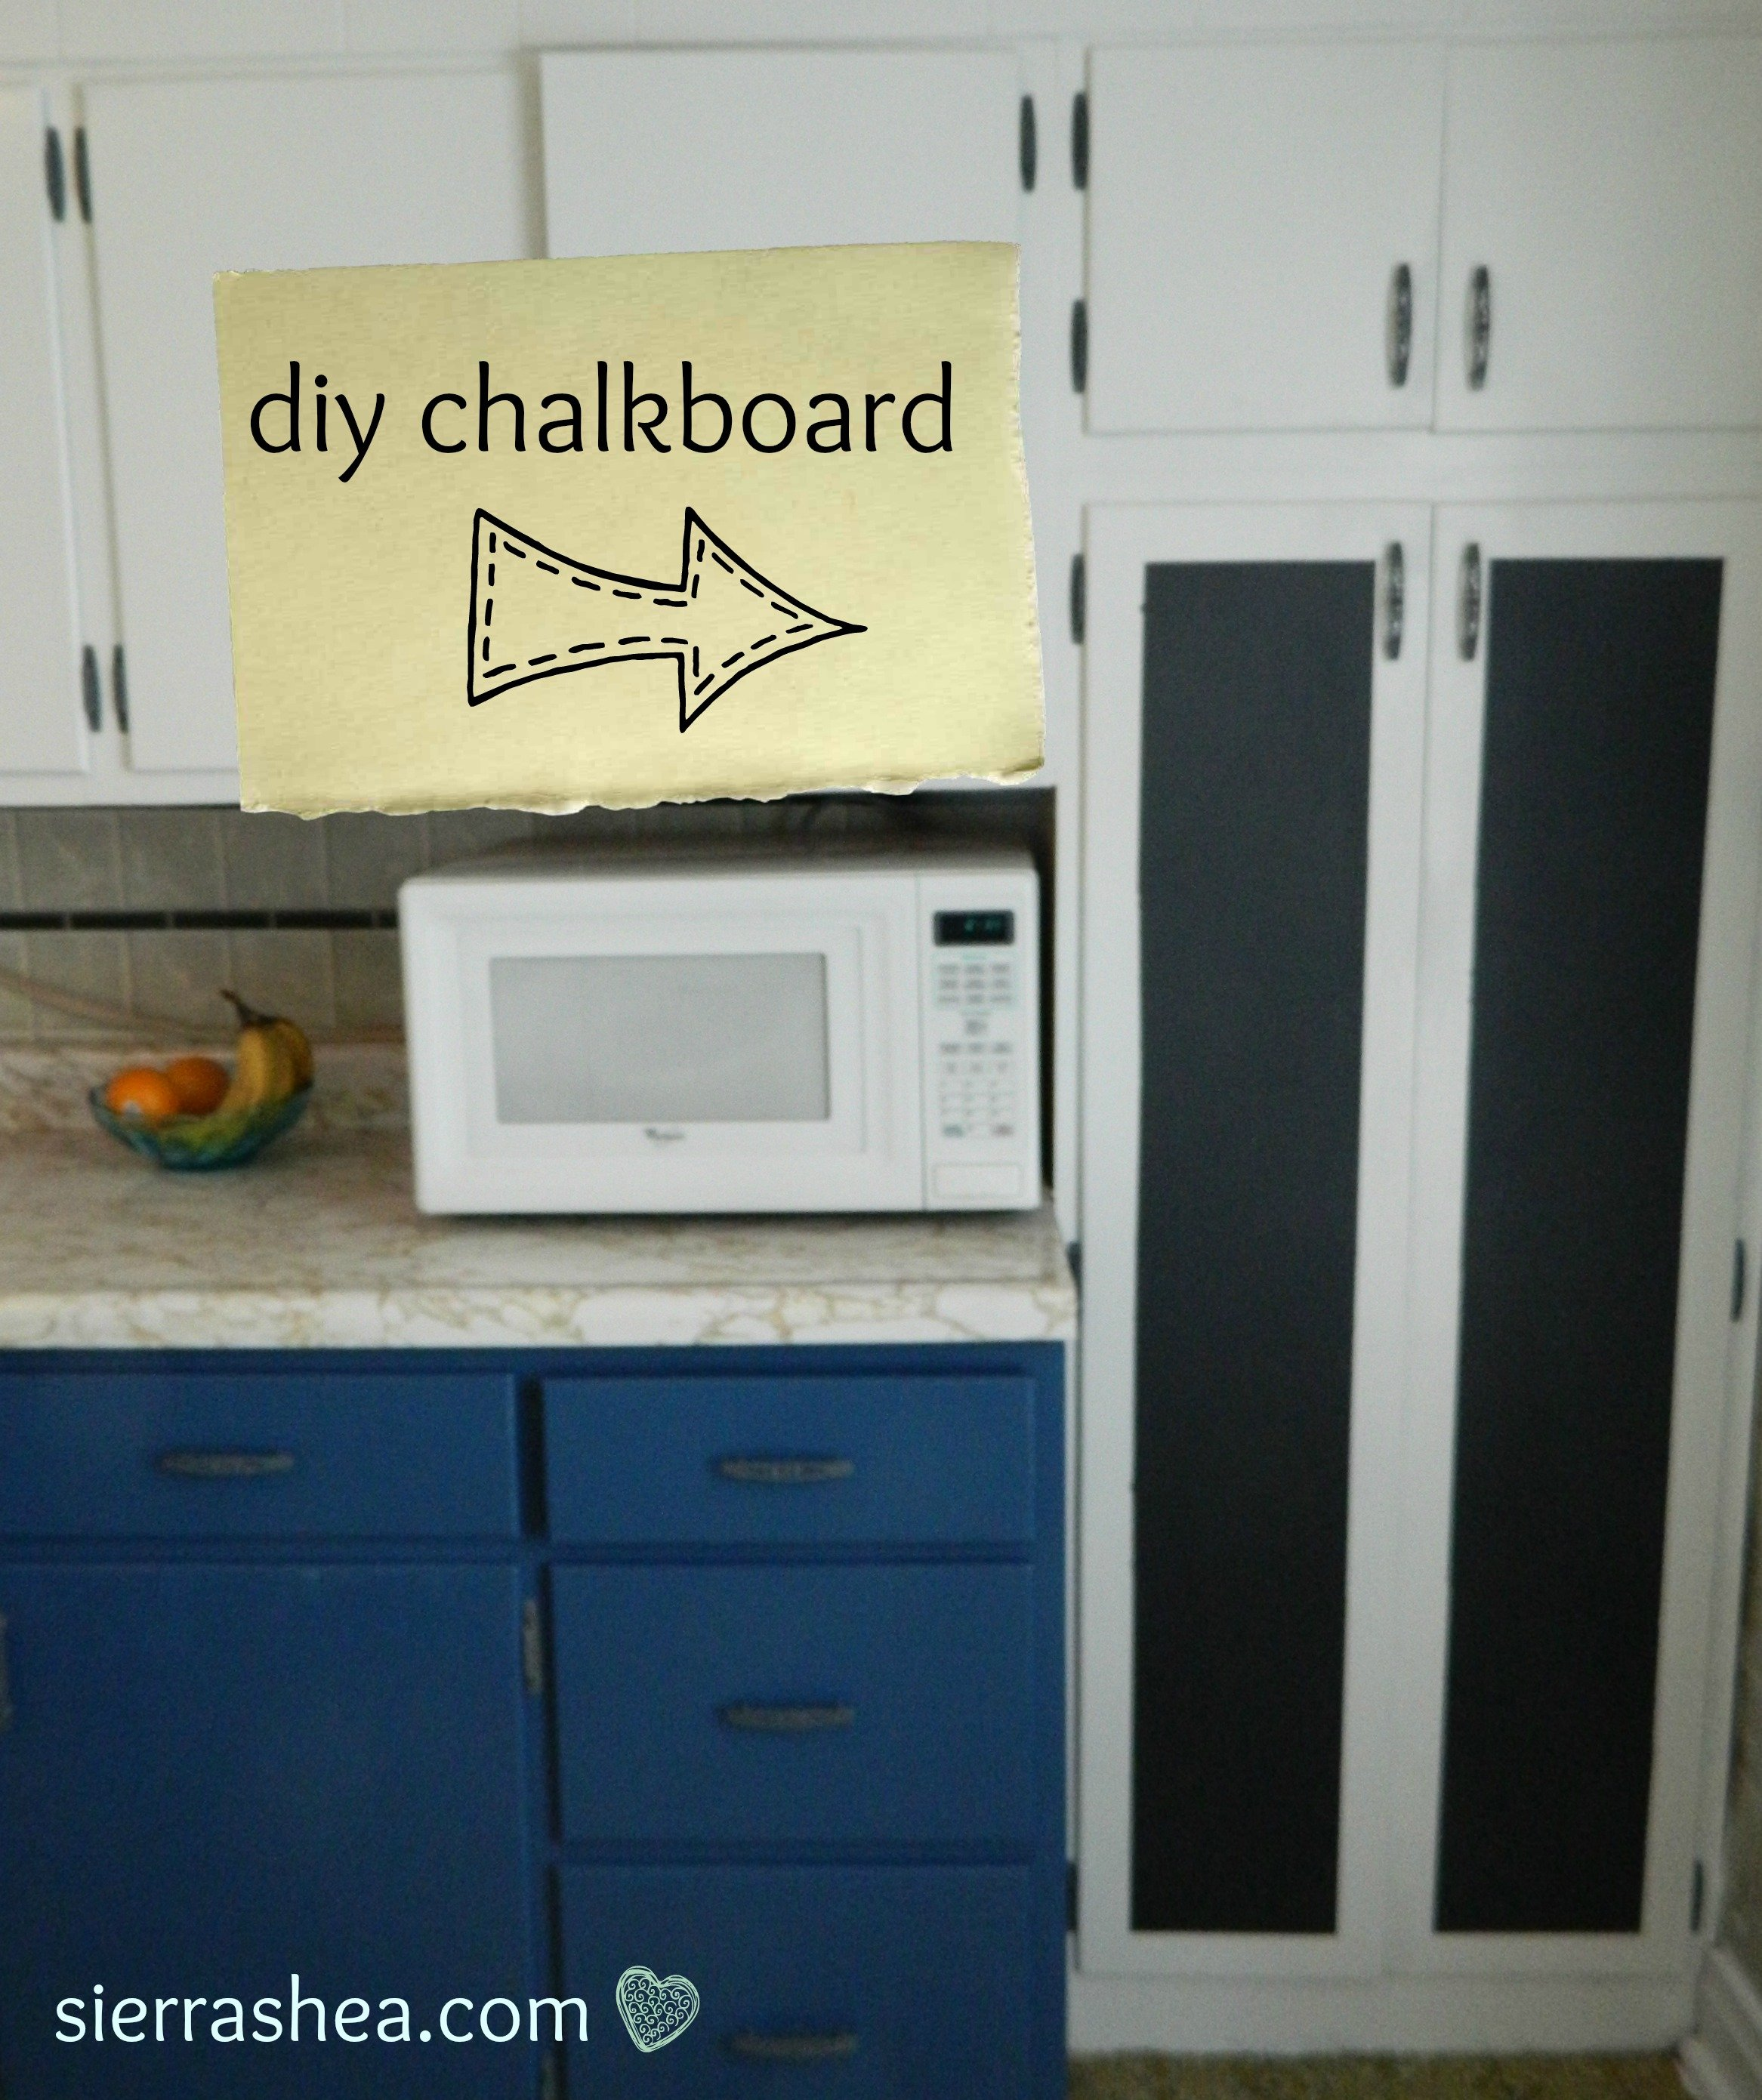 DIY: Chalkboard Paint in Kitchen